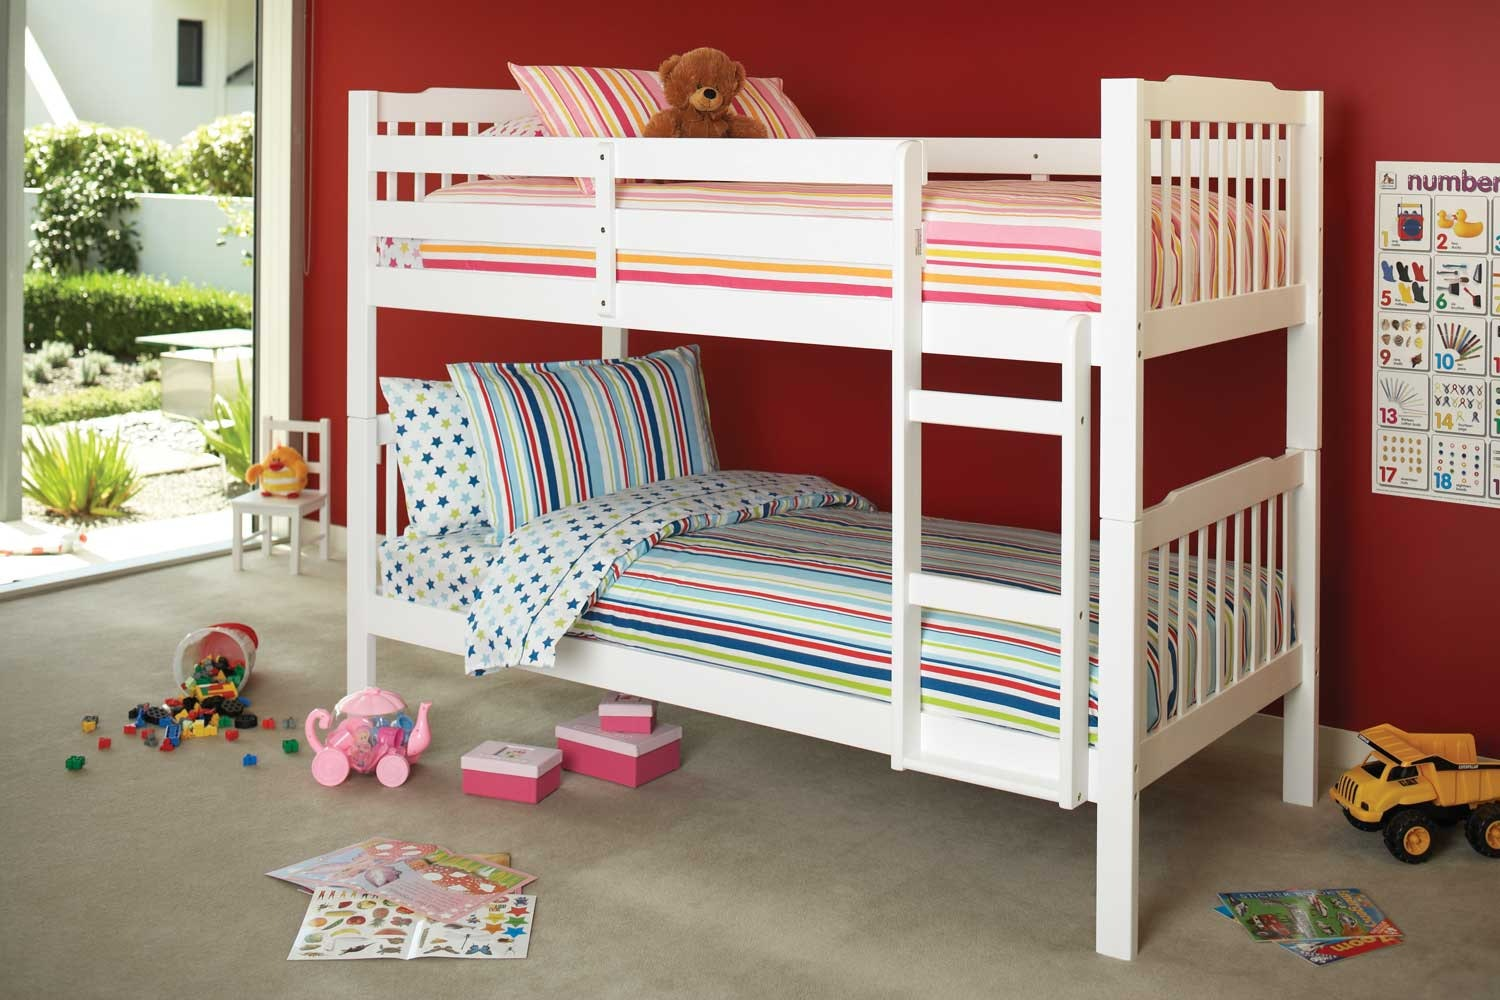 Kids Bedroom Harvey Norman jessica single bunk bed framenero furniture | harvey norman